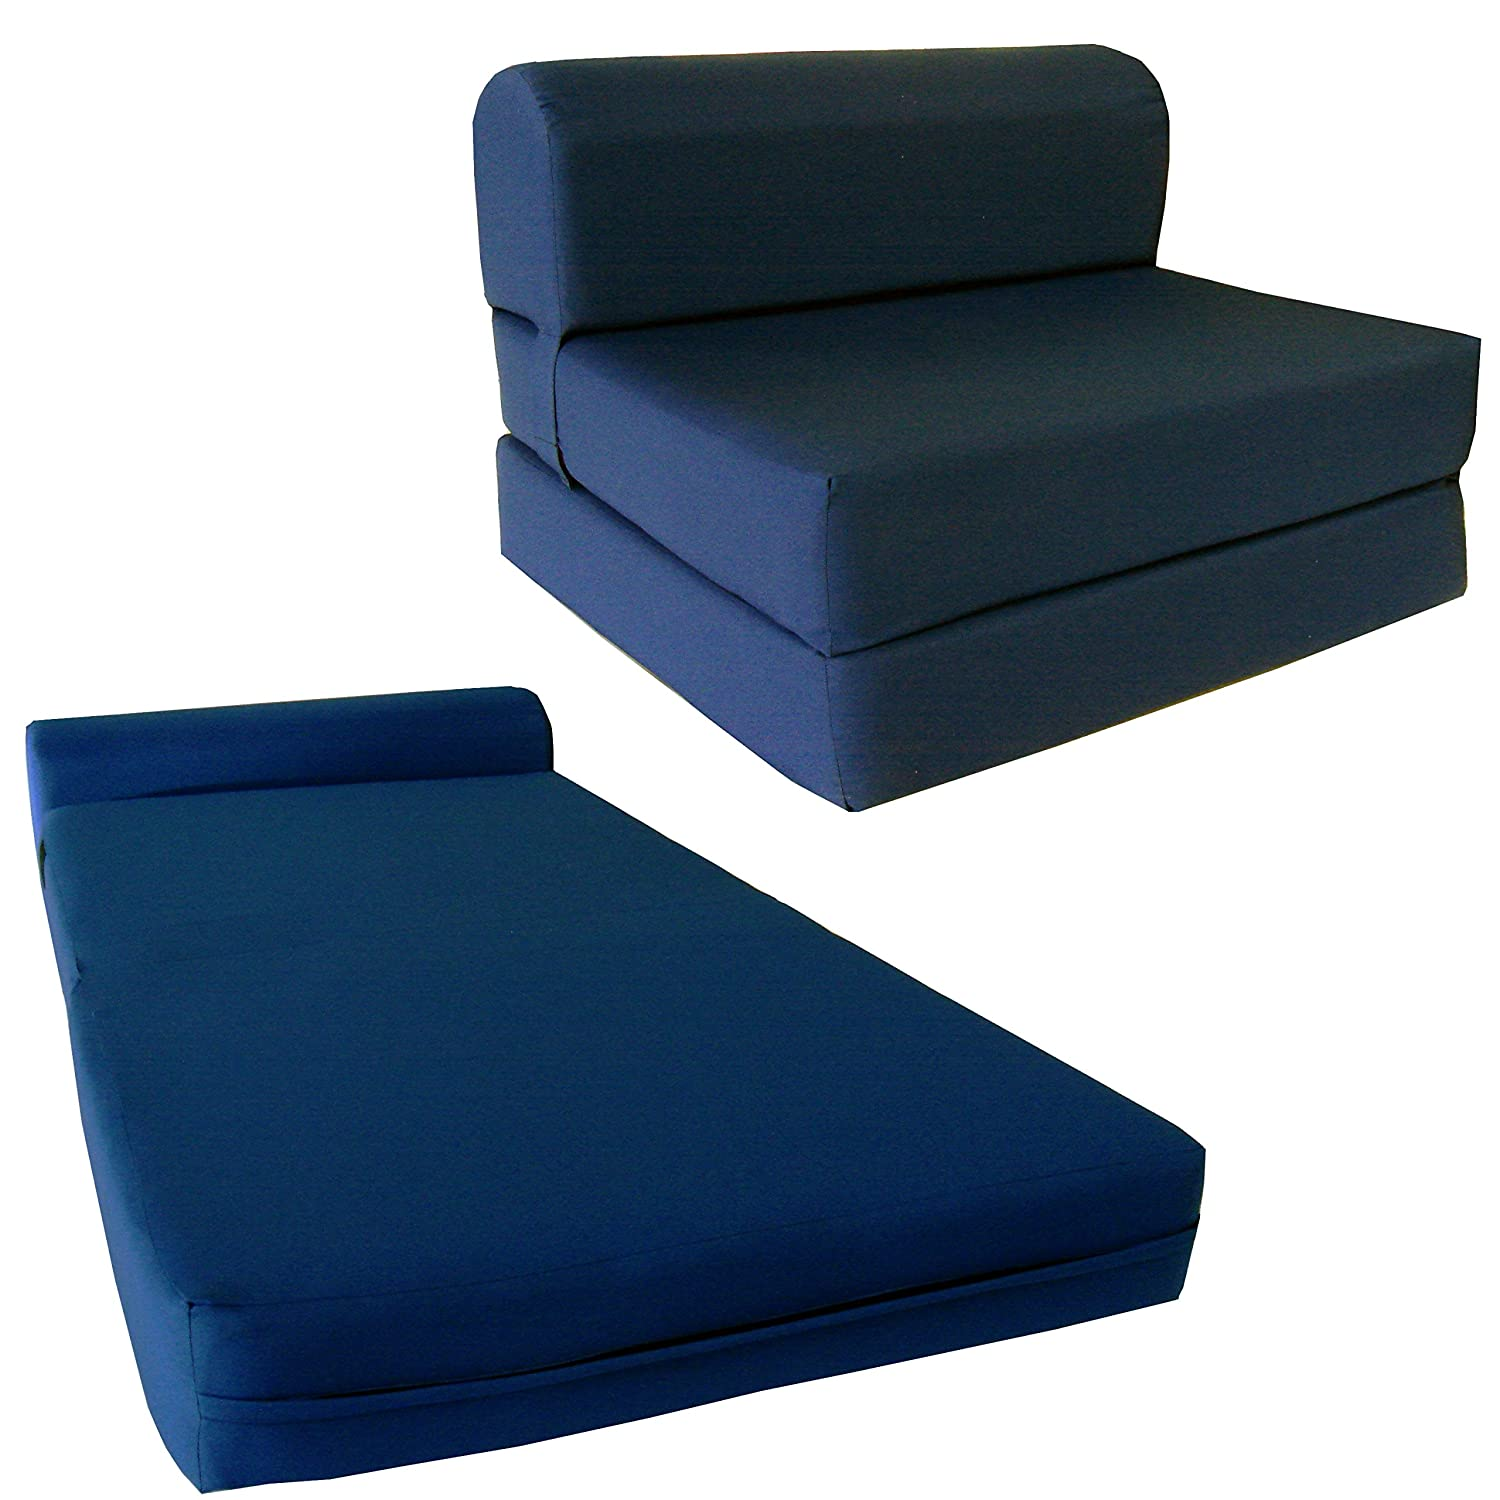 "D&D Futon Furniture Chair Folding Foam Bed, Studio Sofa Guest Folded Foam Mattress (6"" x 24"" x 70"", Navy Blue)"